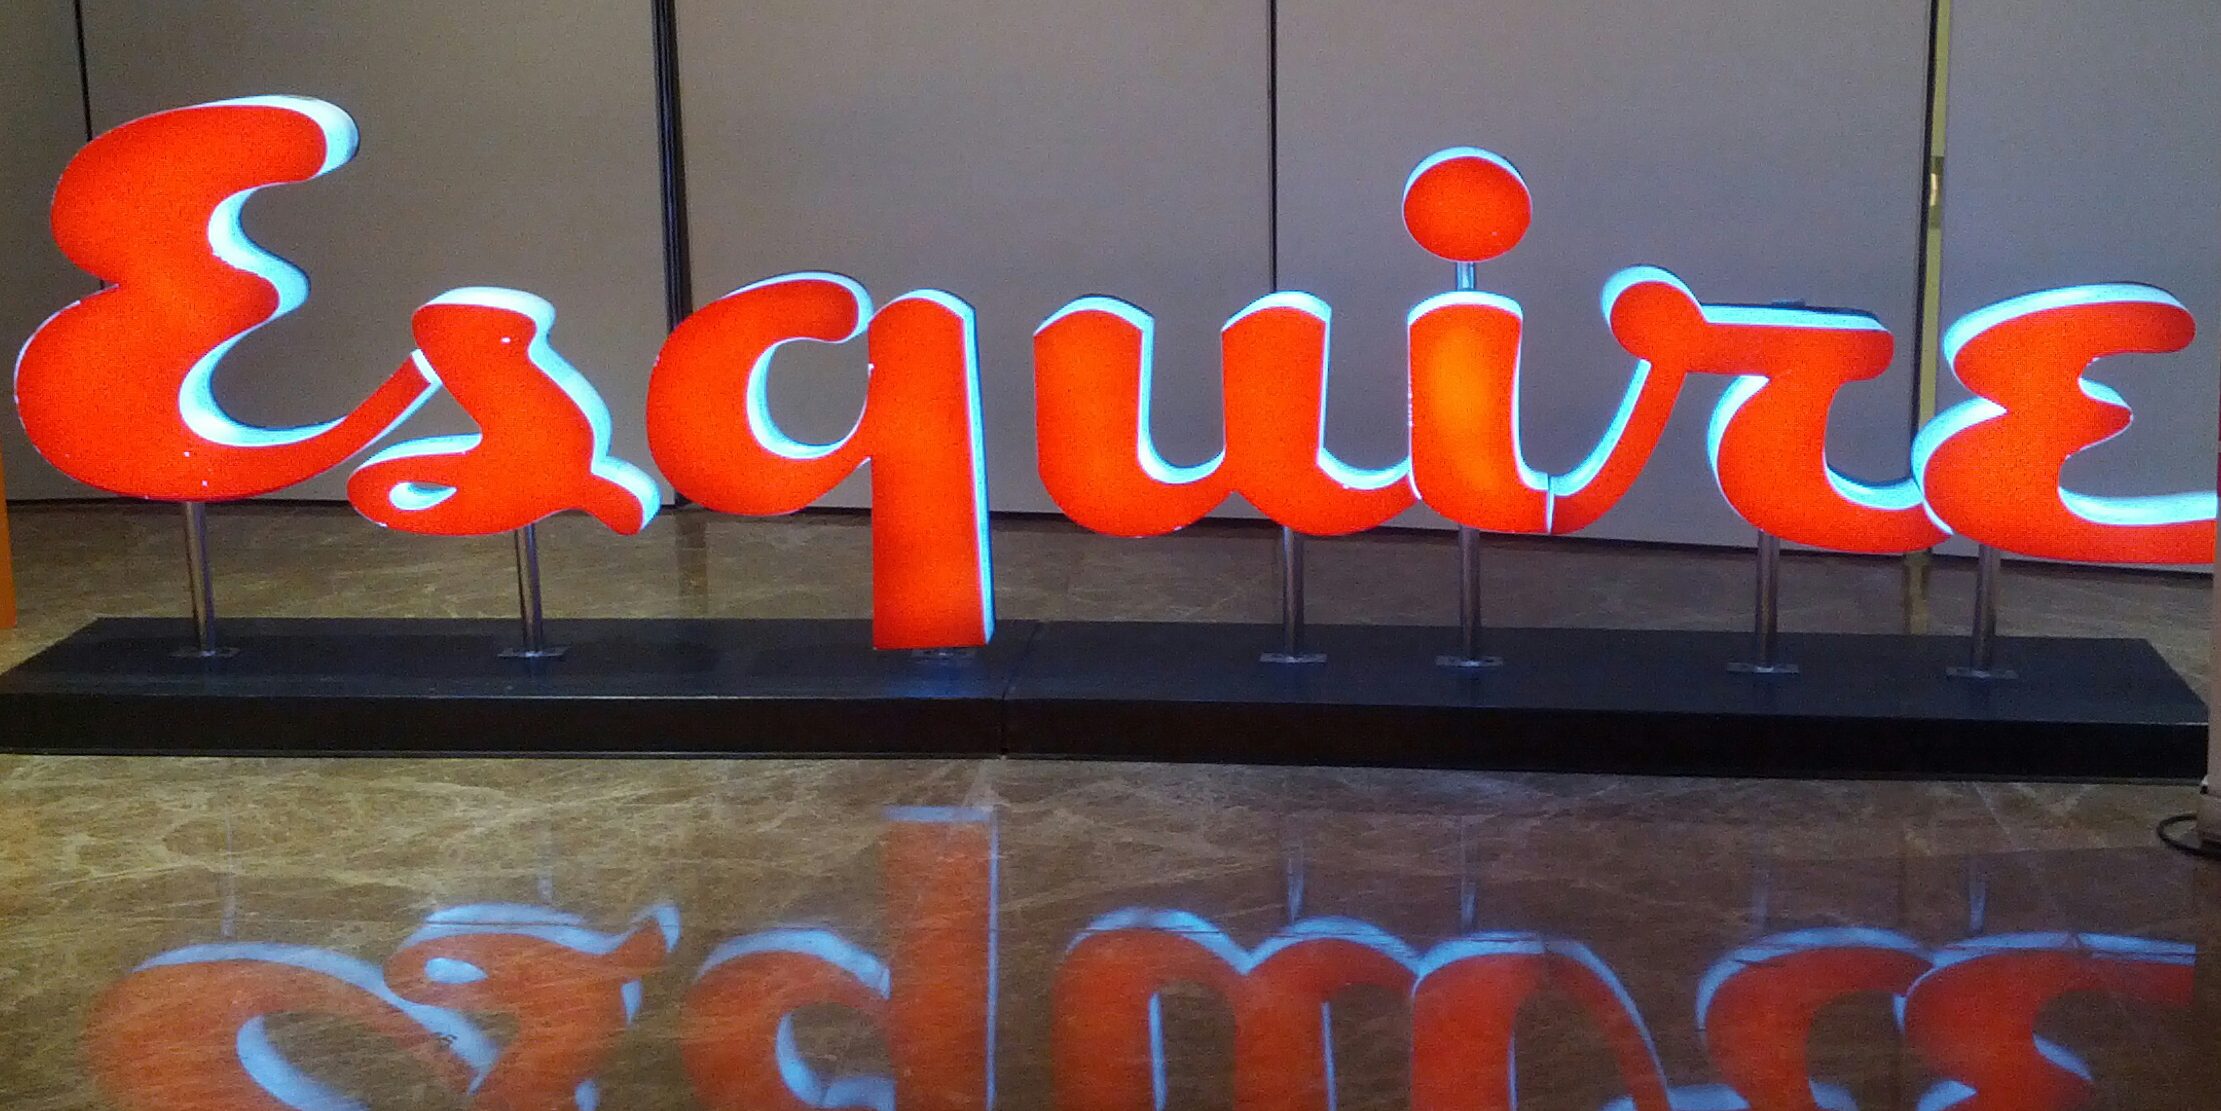 A red neon sign featuring Esquire's logo